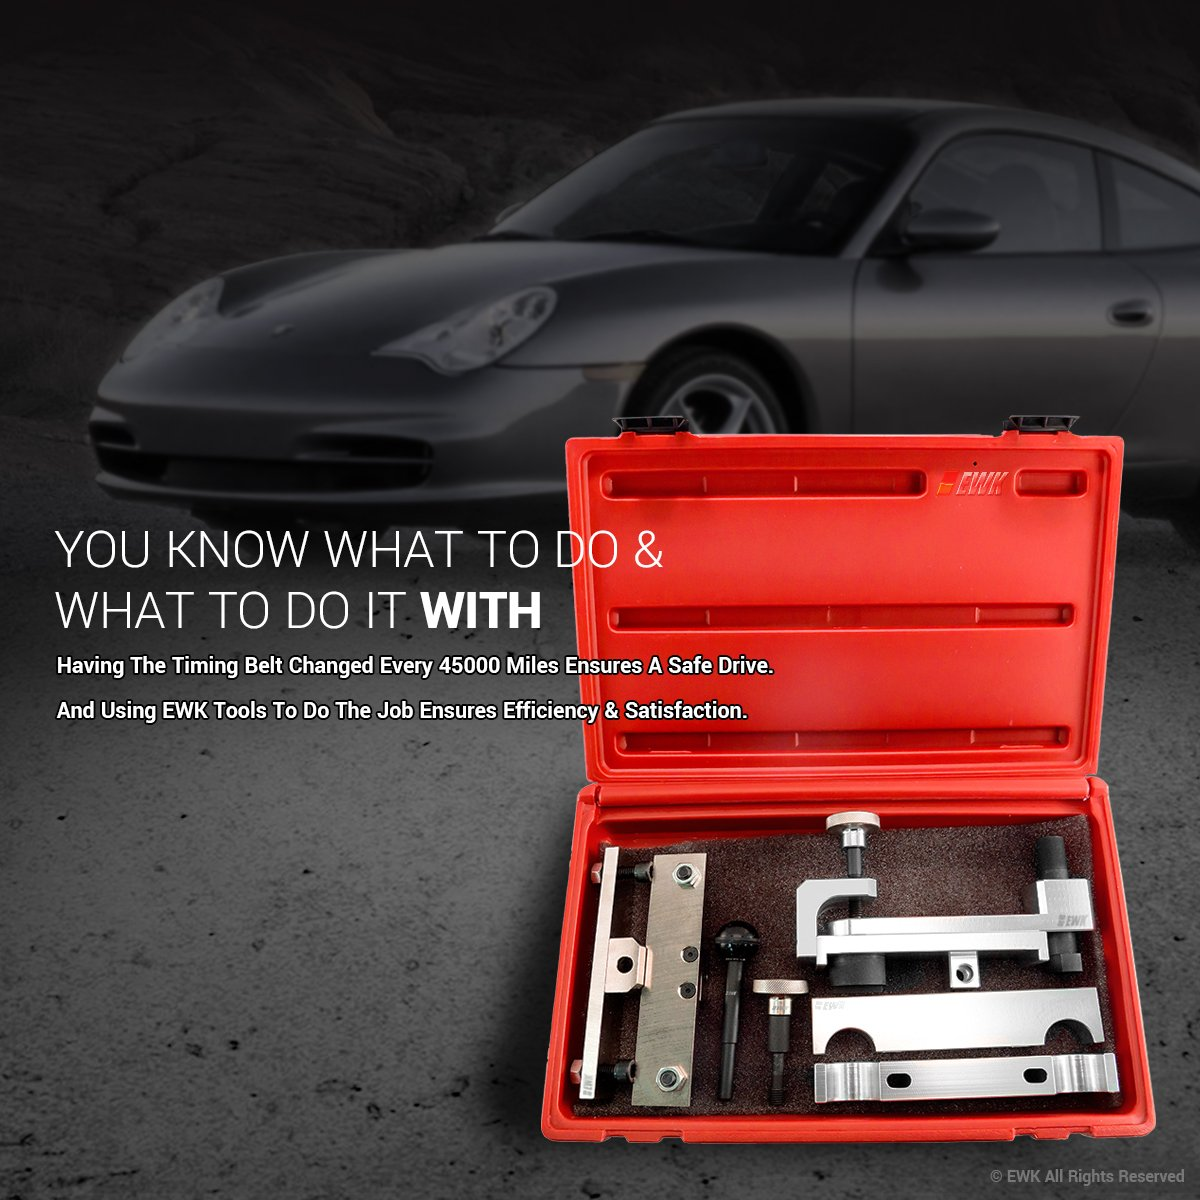 2001 Boxster 986 987 EB0162 EWK Camshaft Alignment Timing Tool for Porsche 911 996 997 2002